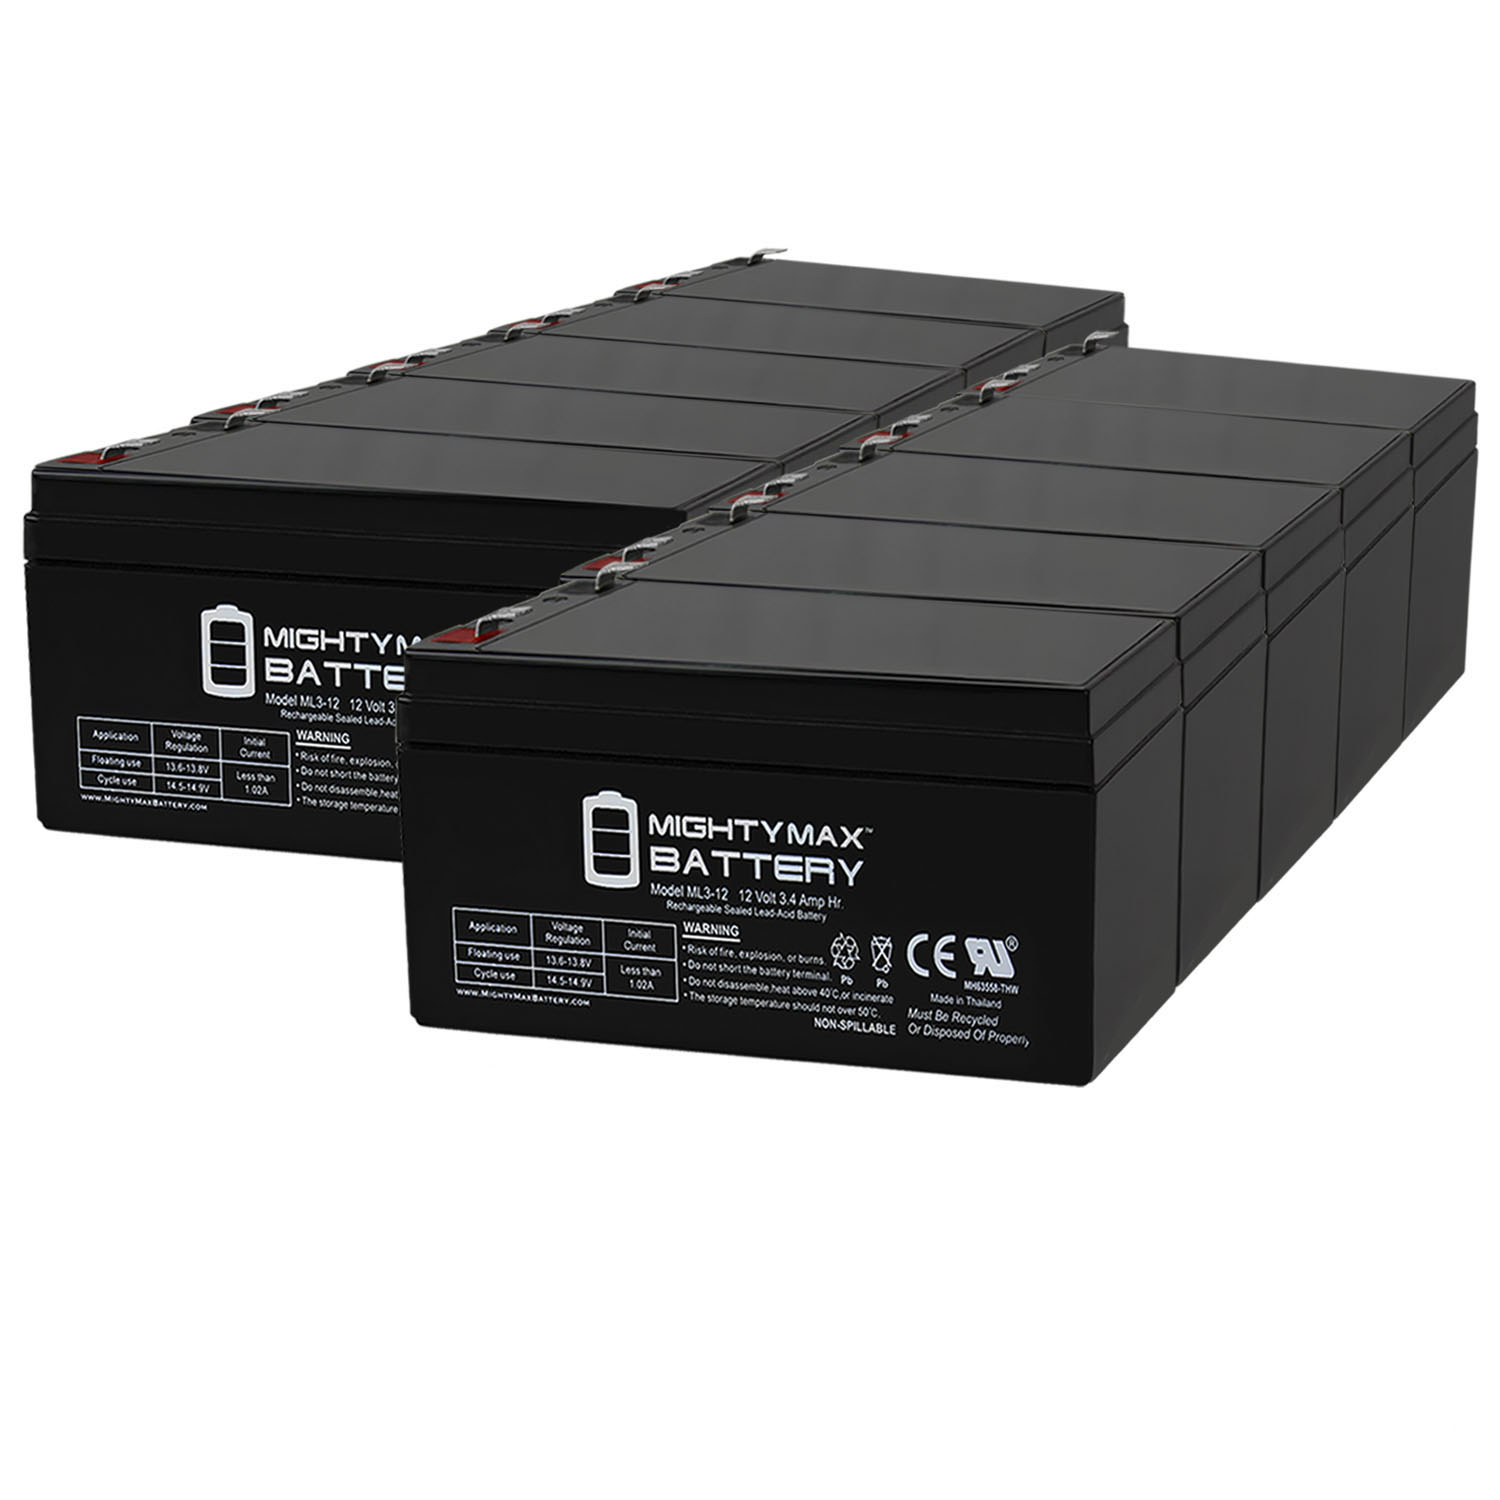 ML3-12 - 12 VOLT 3 AH SLA BATTERY - PACK OF 10